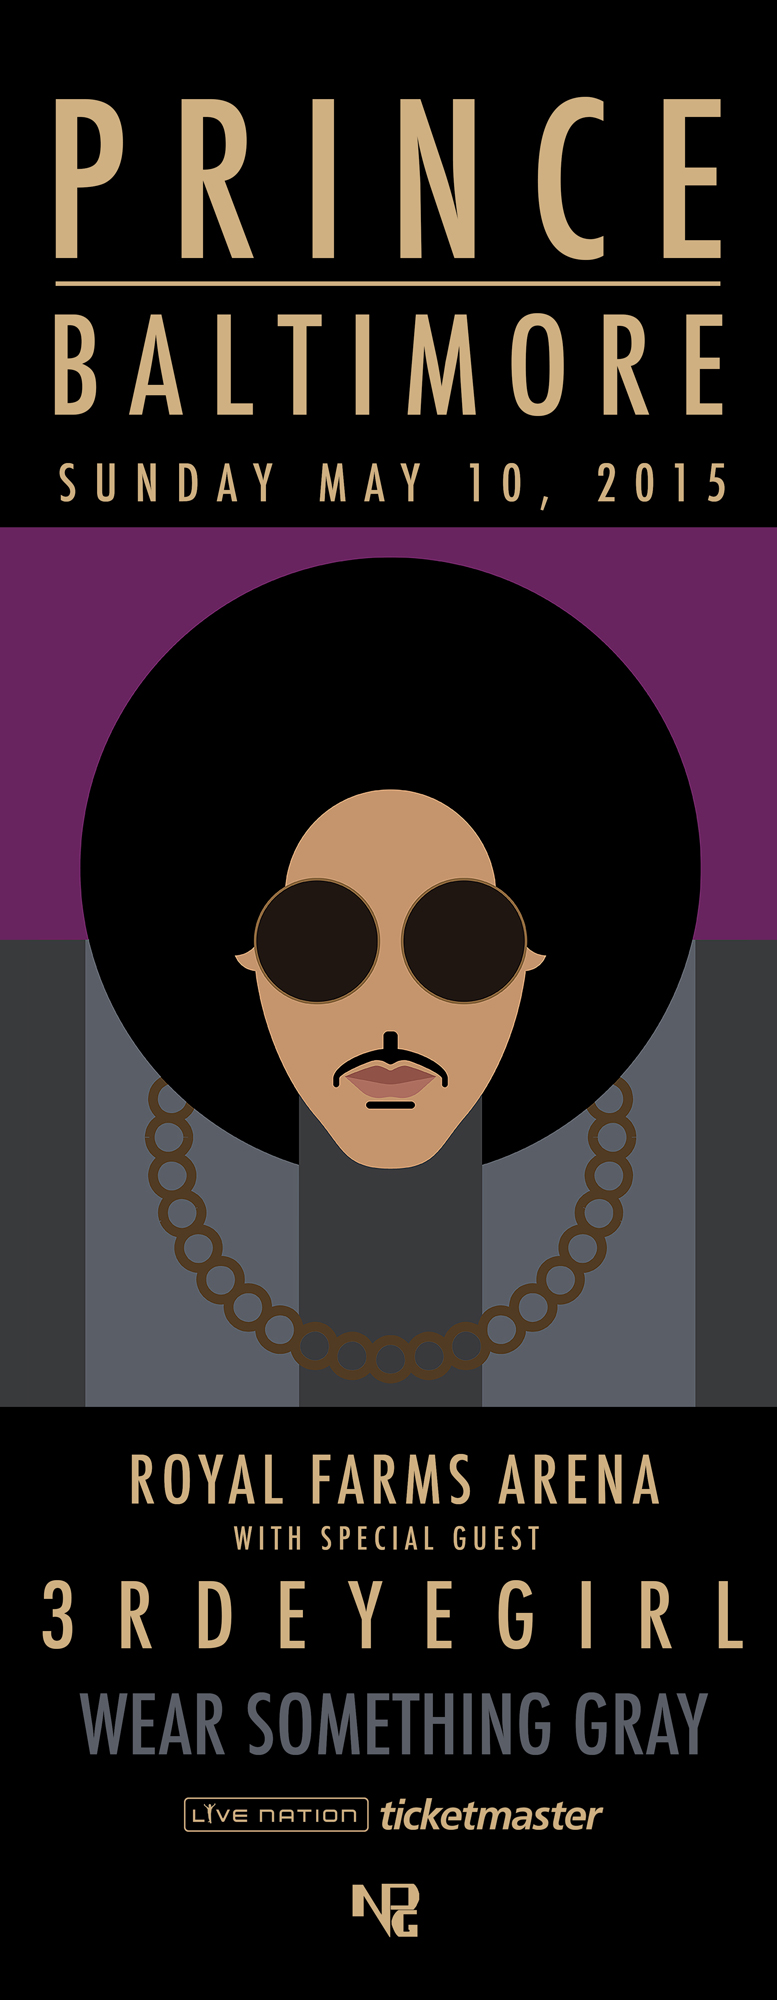 Prince announces special 'Rally 4 Peace' concert in Baltimore